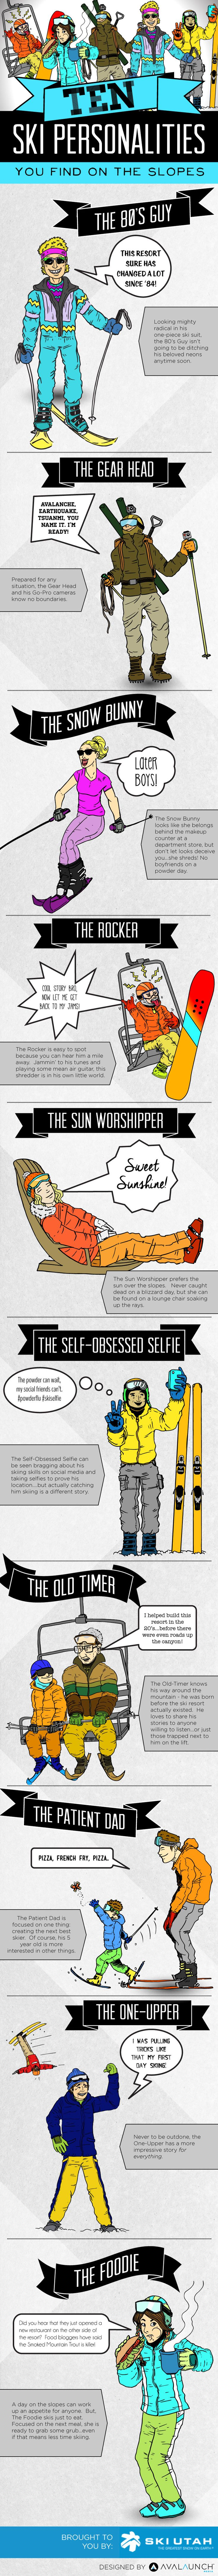 Which one are you? 10 Ski Personalities, but there are more on the slopes.